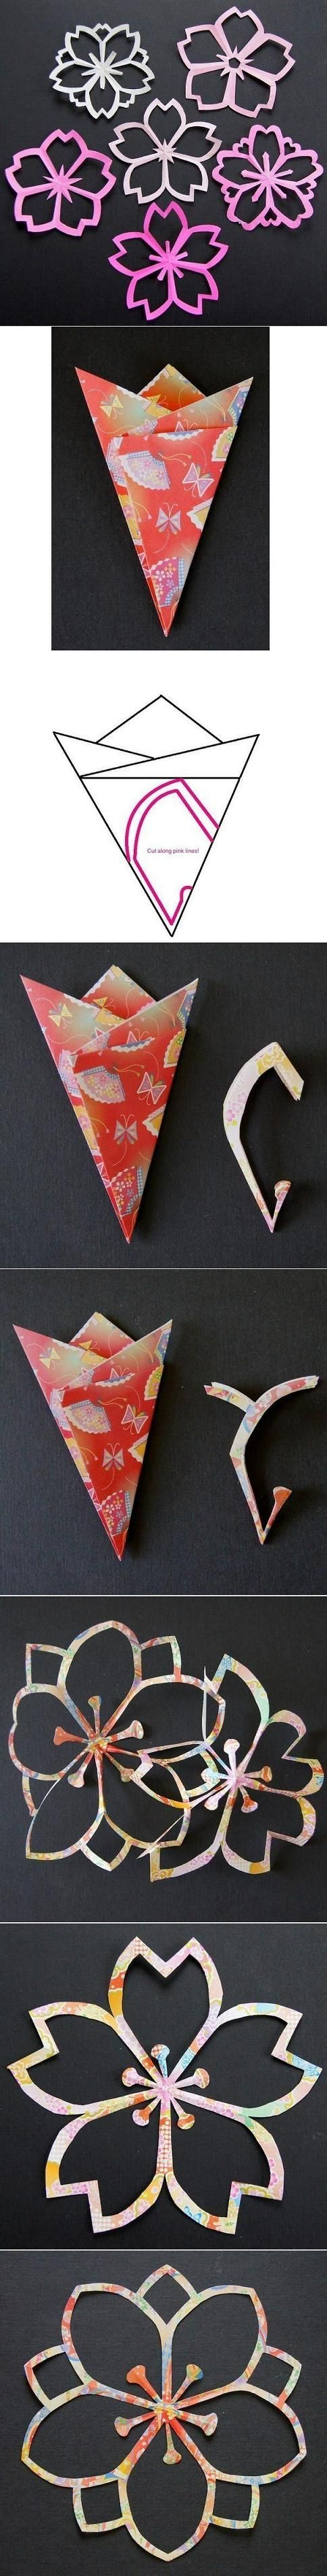 DIY Flower Paper Cutting  knutselen  Pinterest  Flower paper Diy